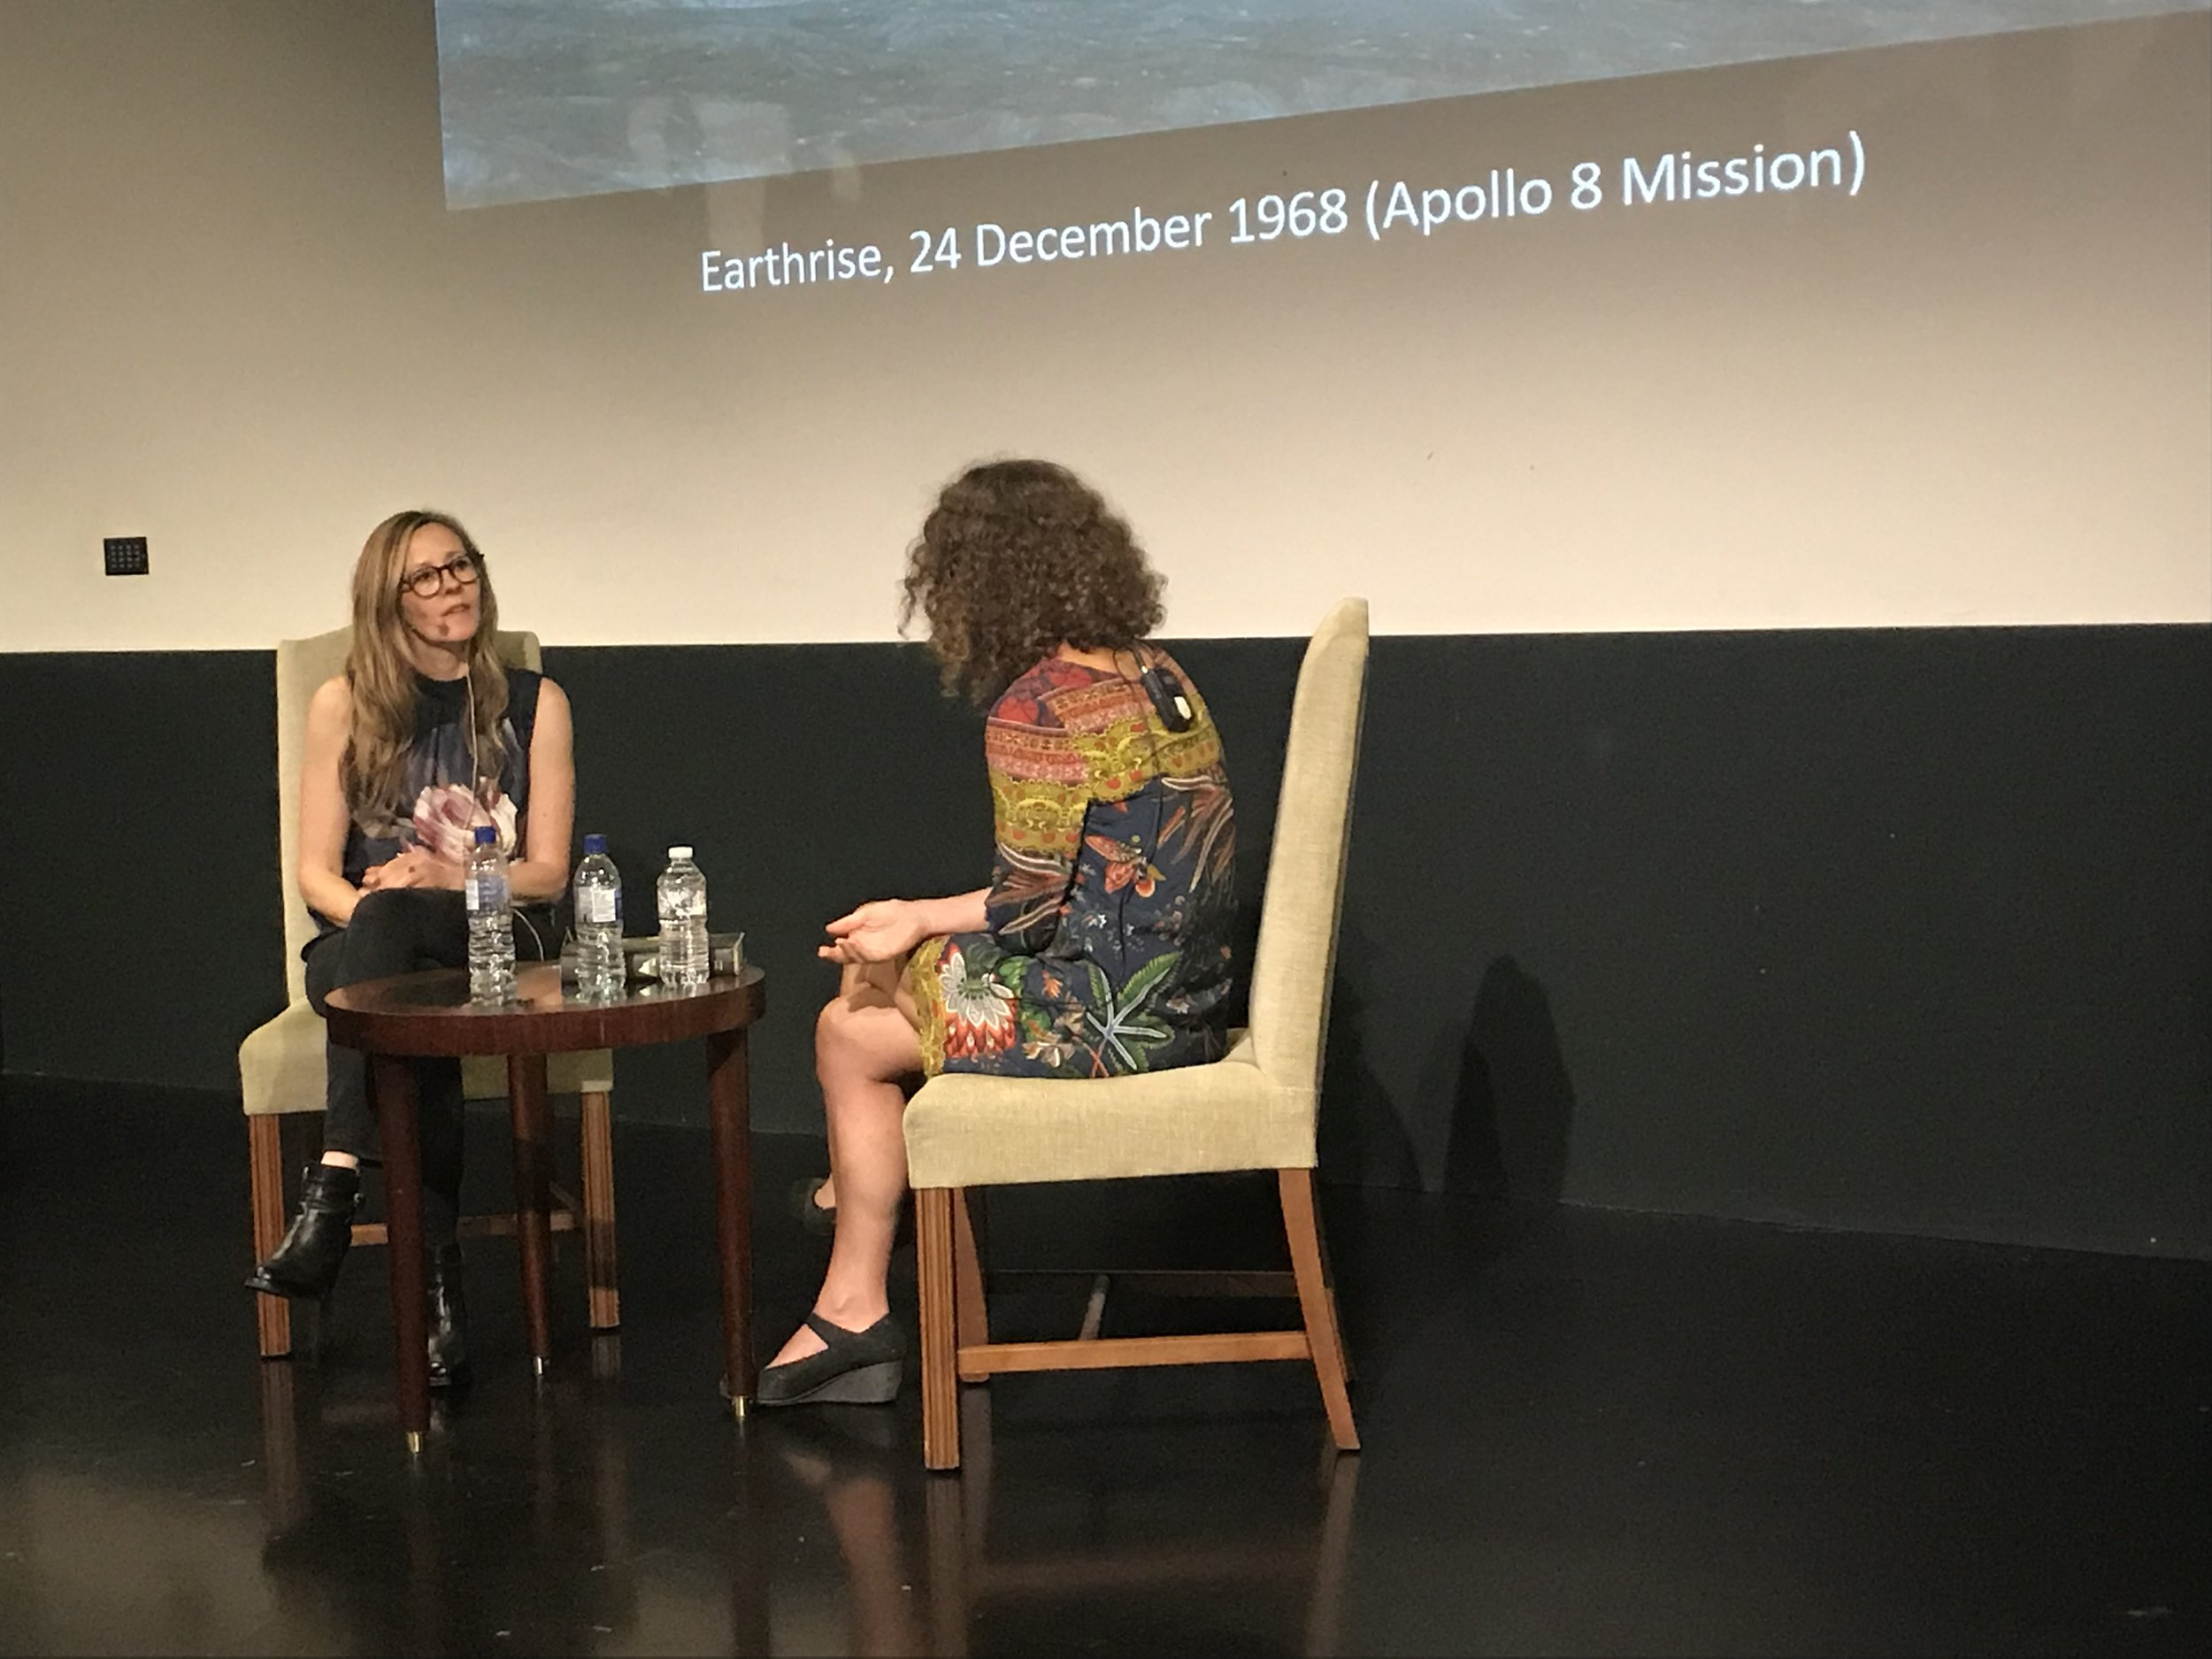 Andrea Wulf and Gaia Vince in discussion | Credt: Talita Bateman